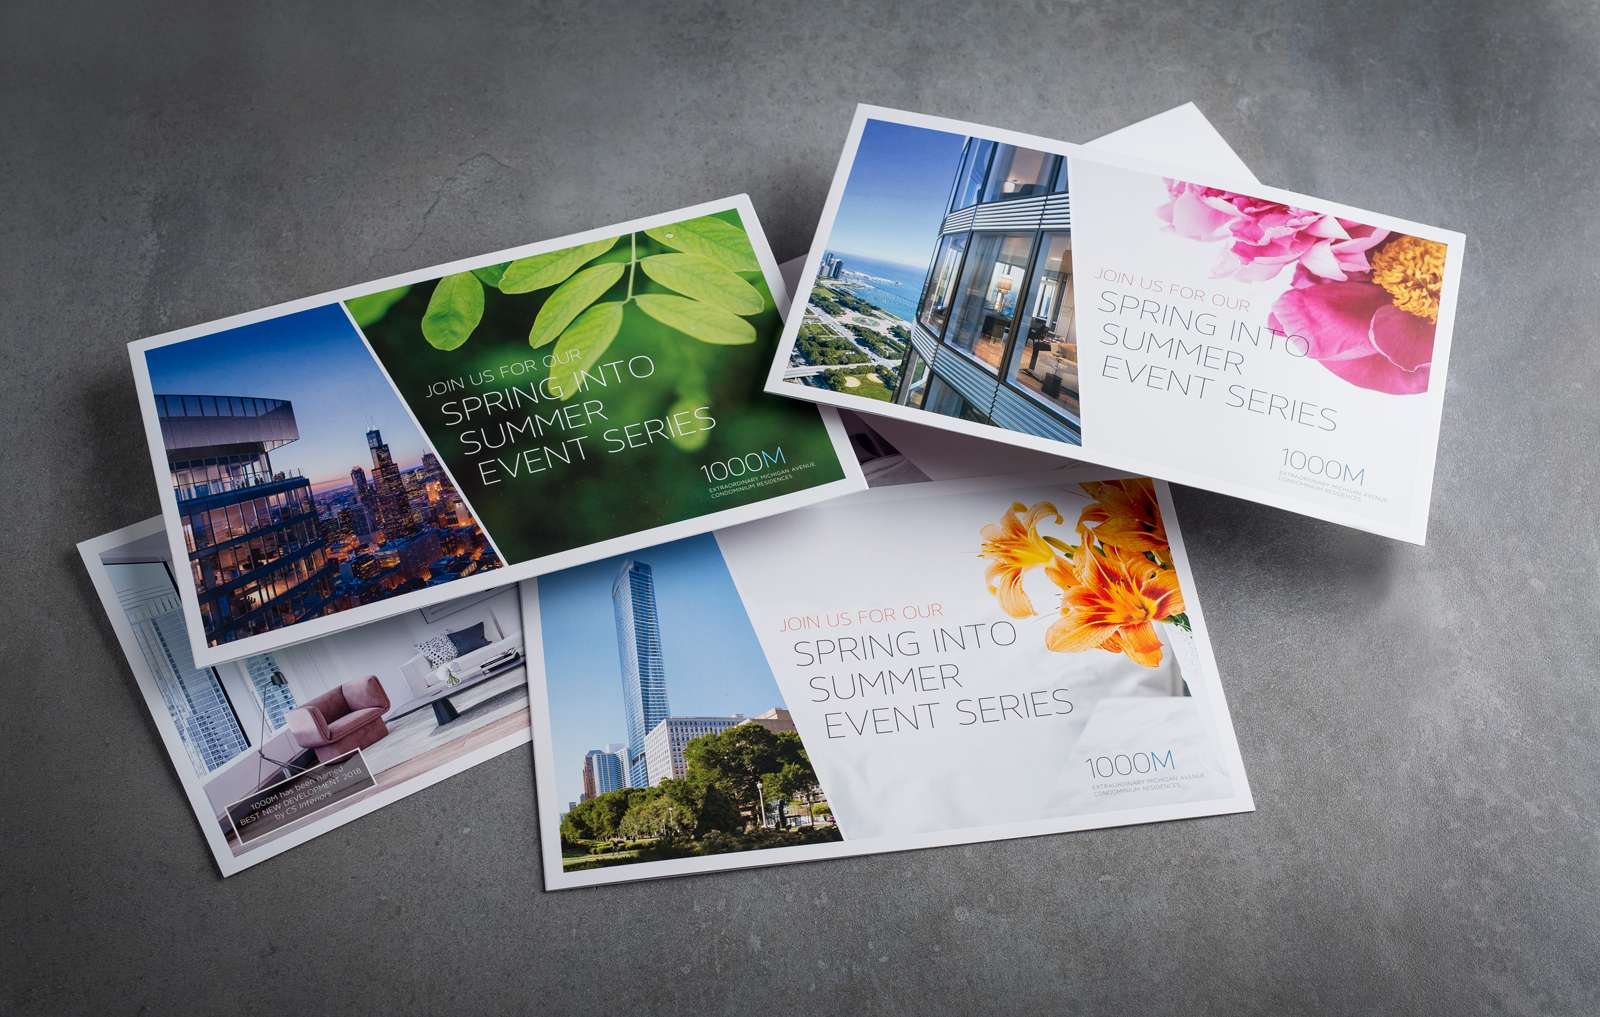 Direct mail advertisement designed for 1000M with the Hello Beautiful creative campaign